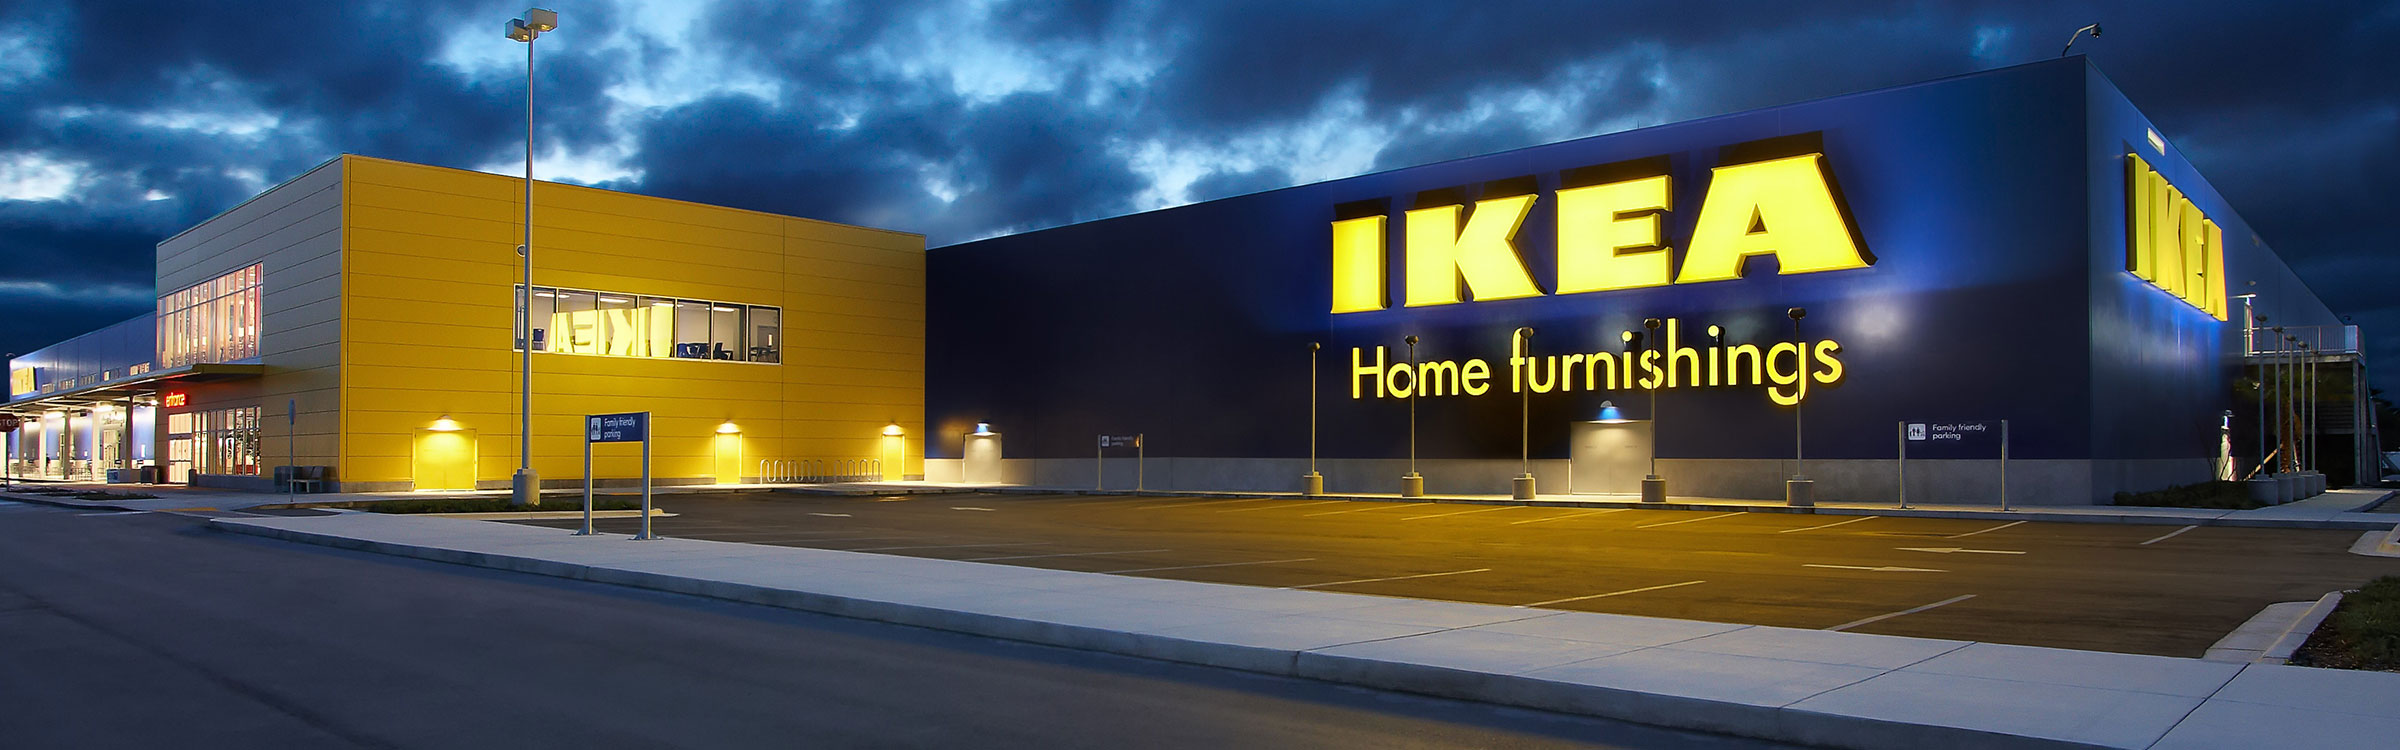 Ikea magasin